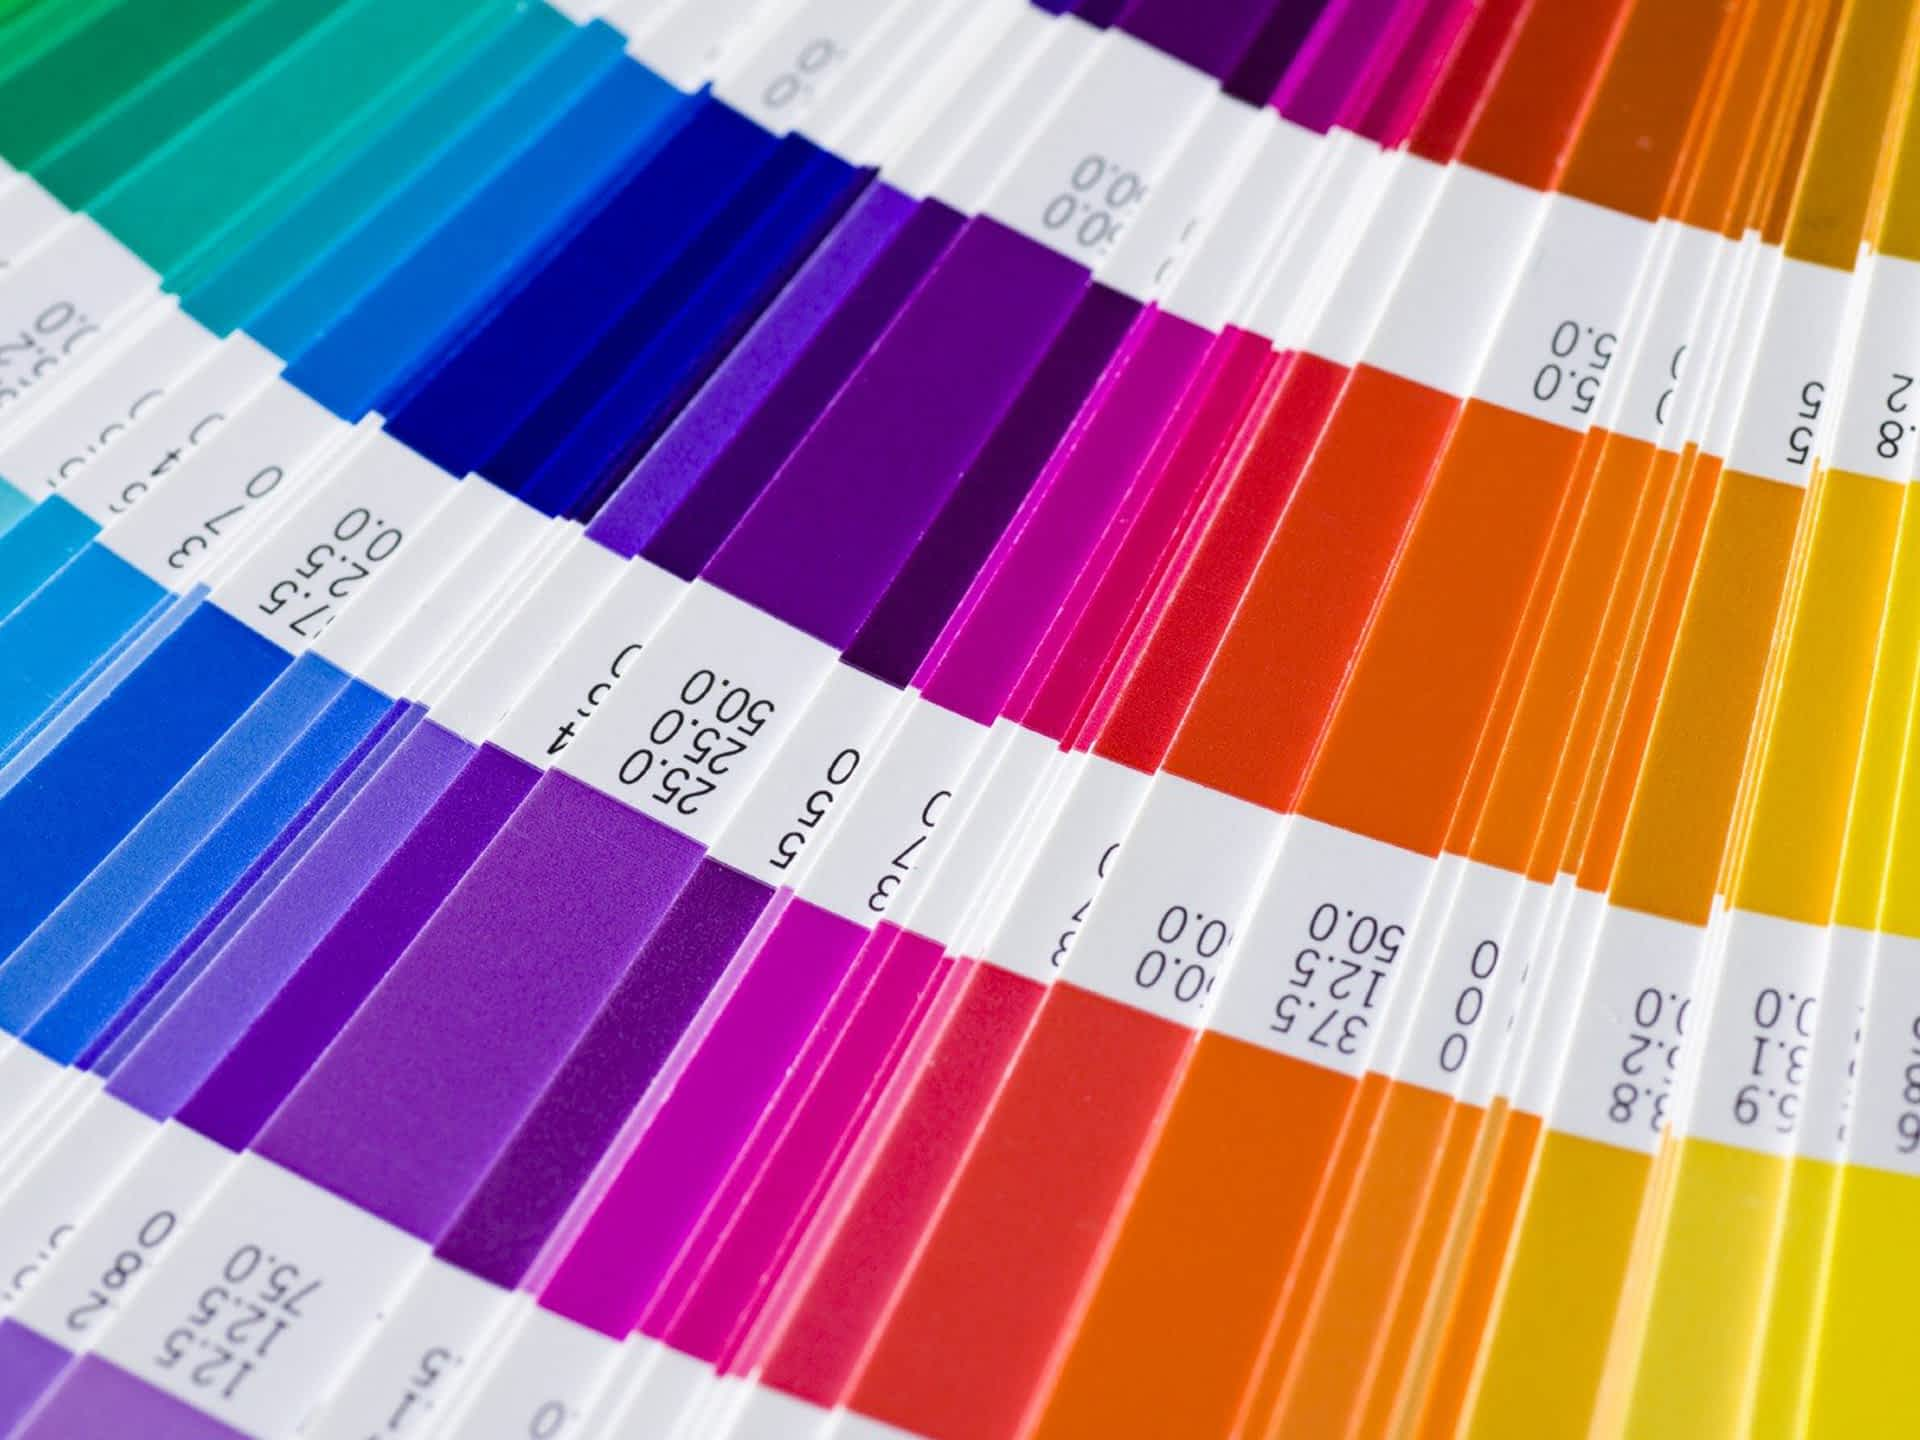 Top tips for choosing brand colours